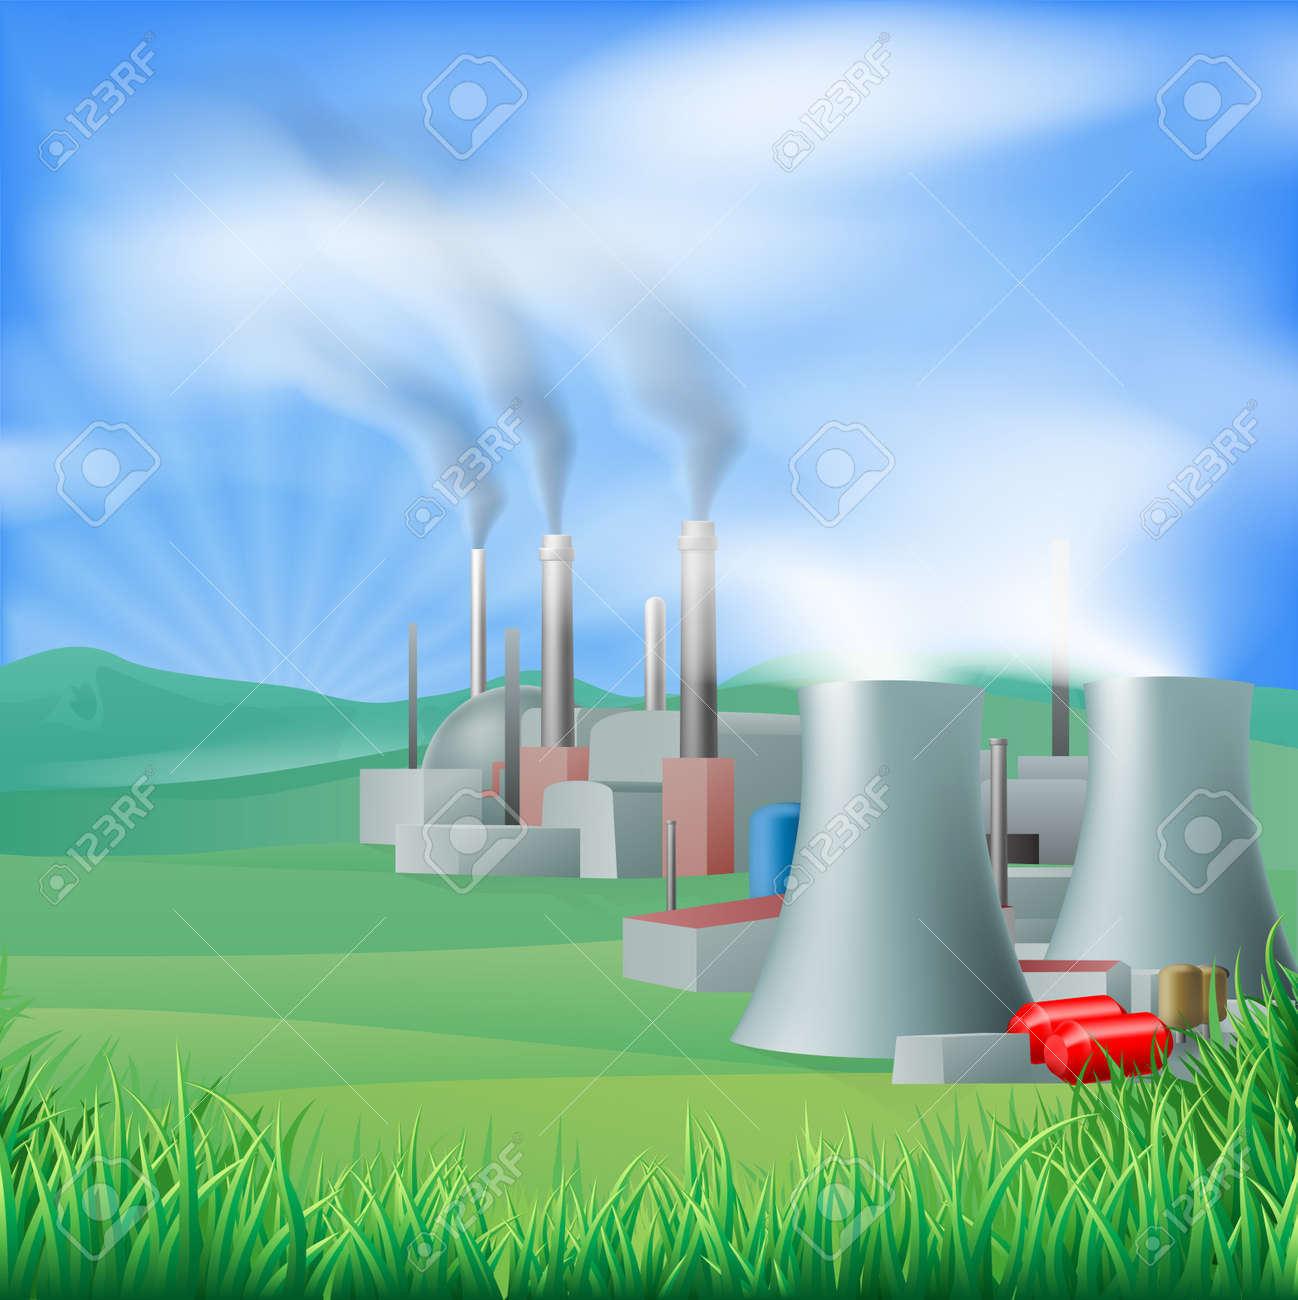 Illustration of a power plant generating power and electricity. Could be fossil fuel or other plant with chimneys and cooling towers, e.g. geothermal Stock Vector - 19367402